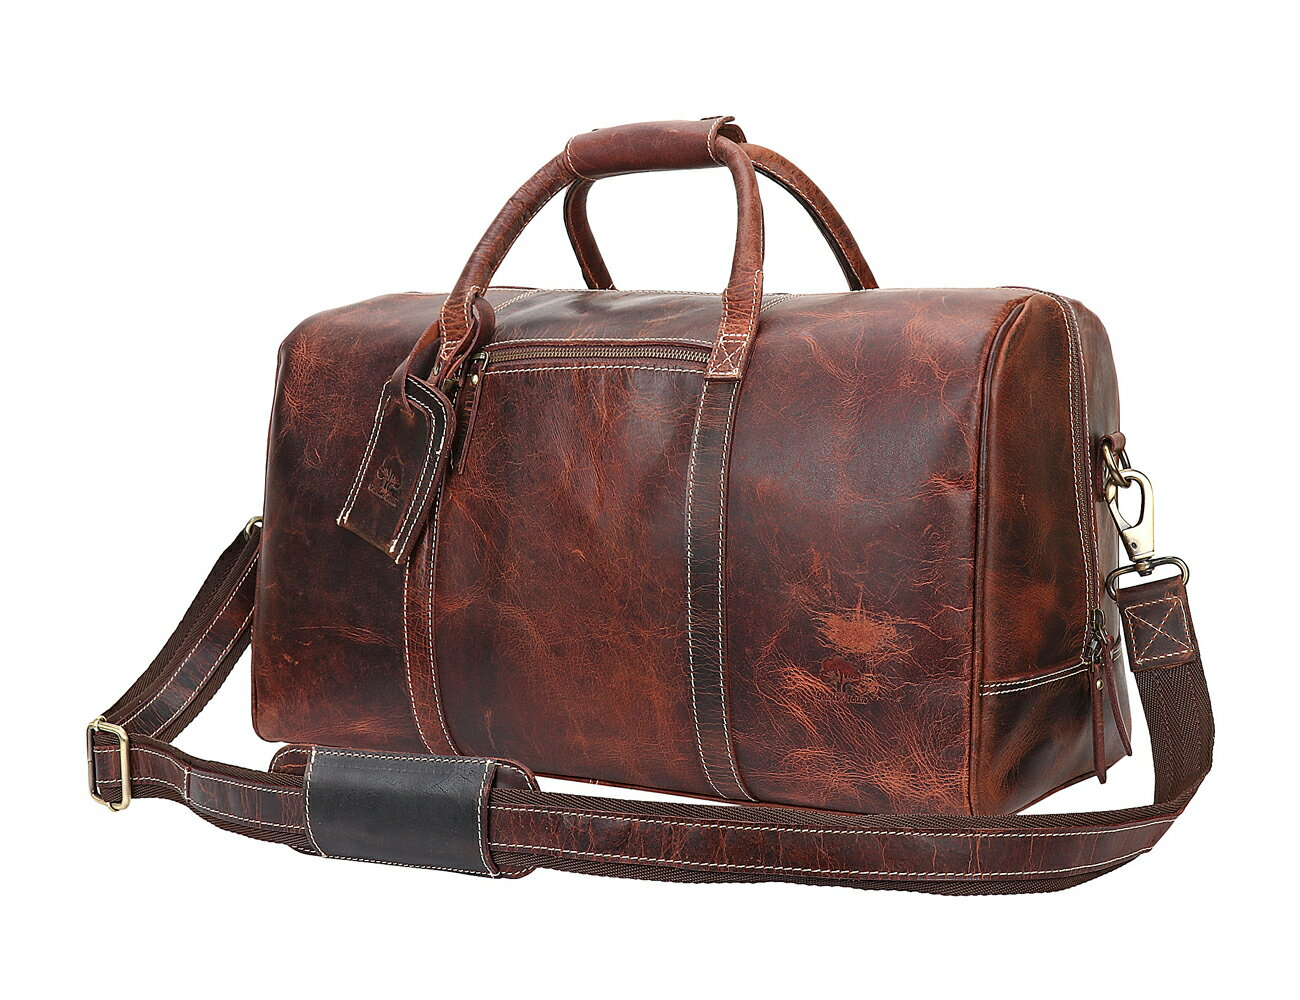 be30df414bf6 Rustic Town Leather Travel Duffel Bag Overnight Weekend Luggage Carry On Airplane  Underseat 0